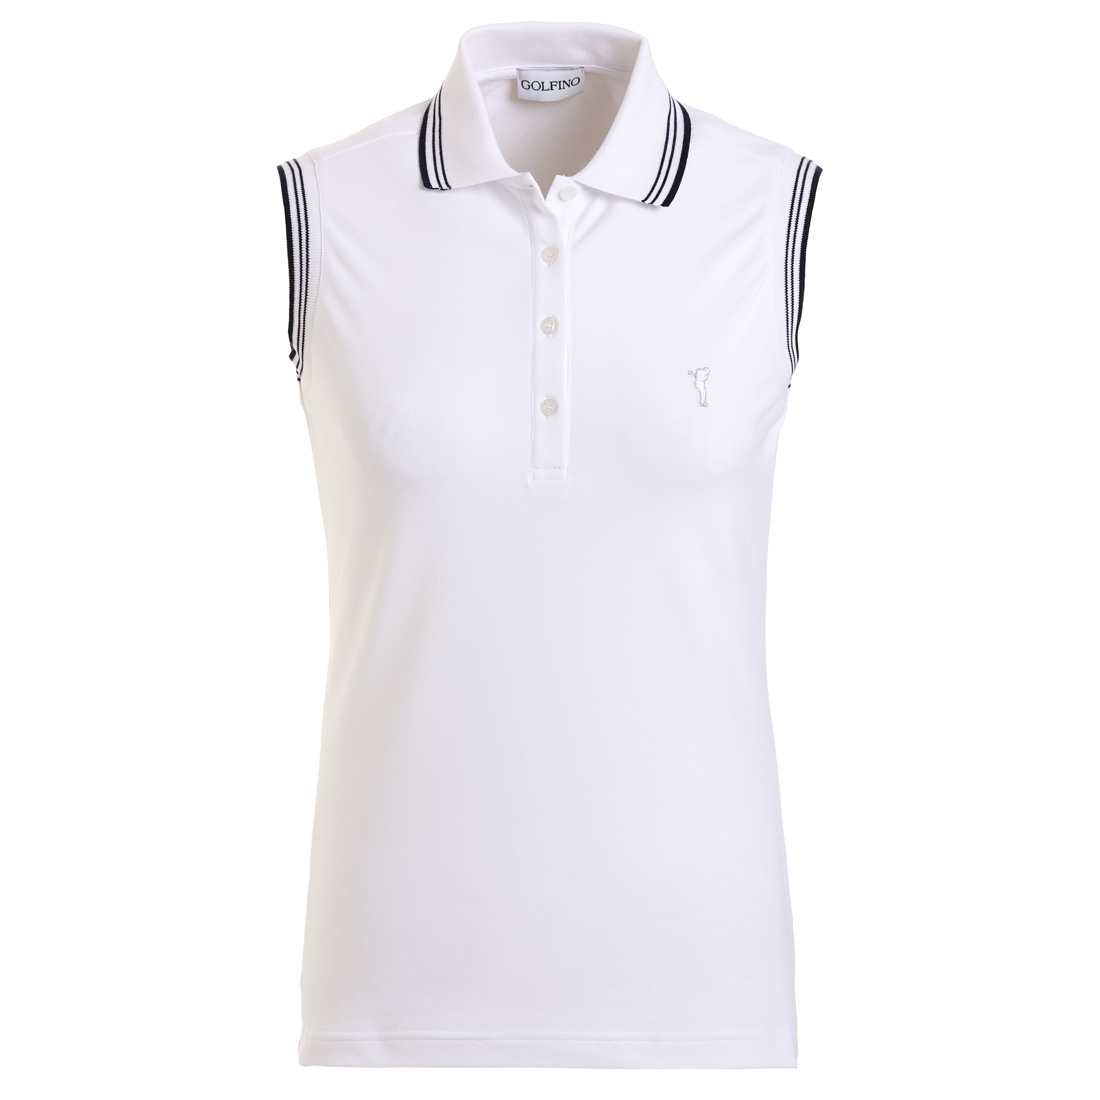 Sleeveless ladies' golf polo shirt in slim fit with sun protection